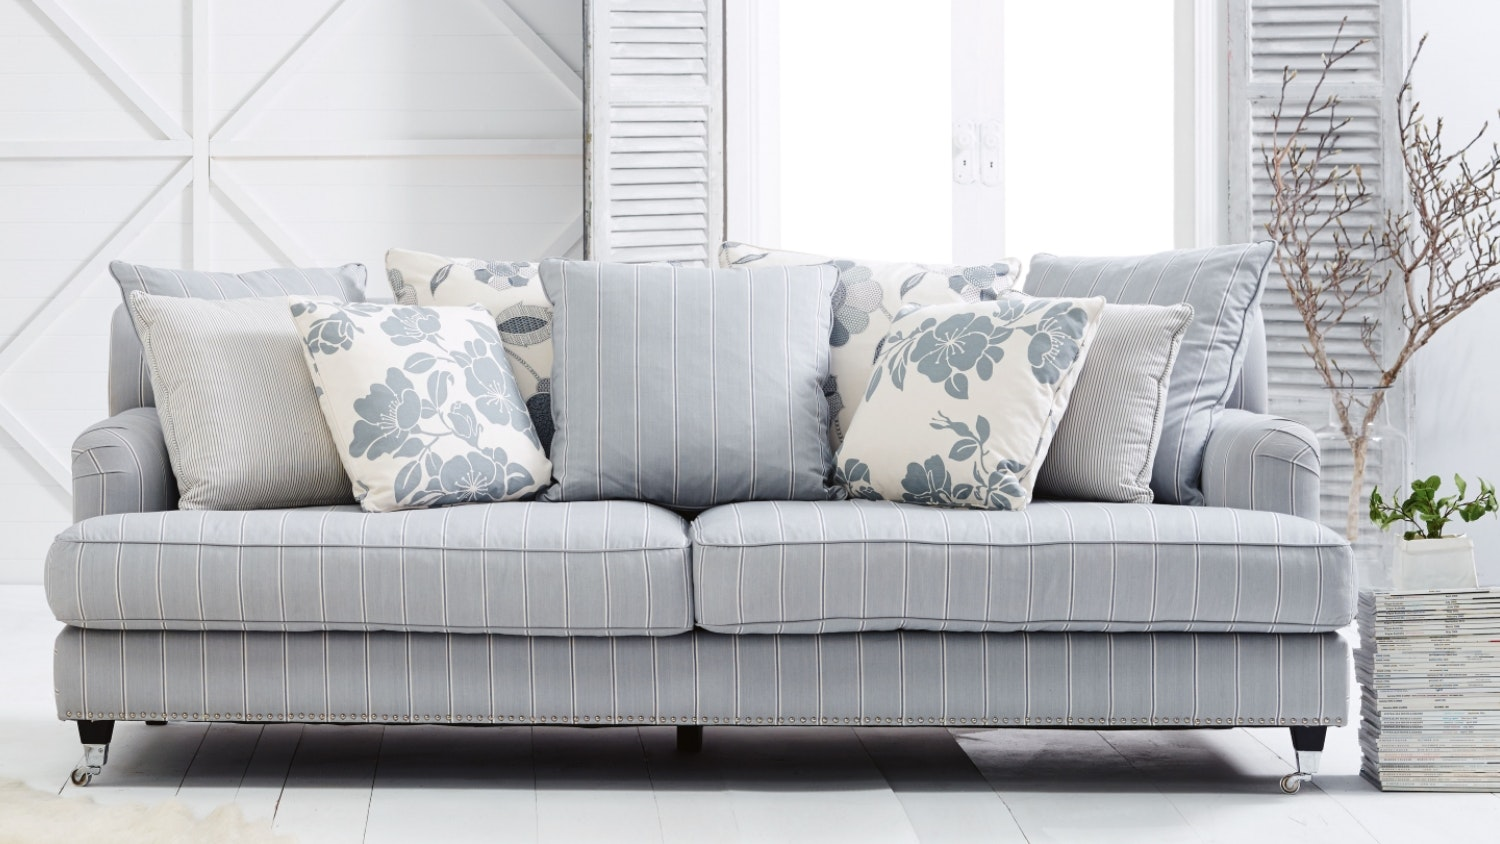 Fabric Lounges Couch Sofa Modular Lounges Couches Domayne ~ Types Of Sofa Materials